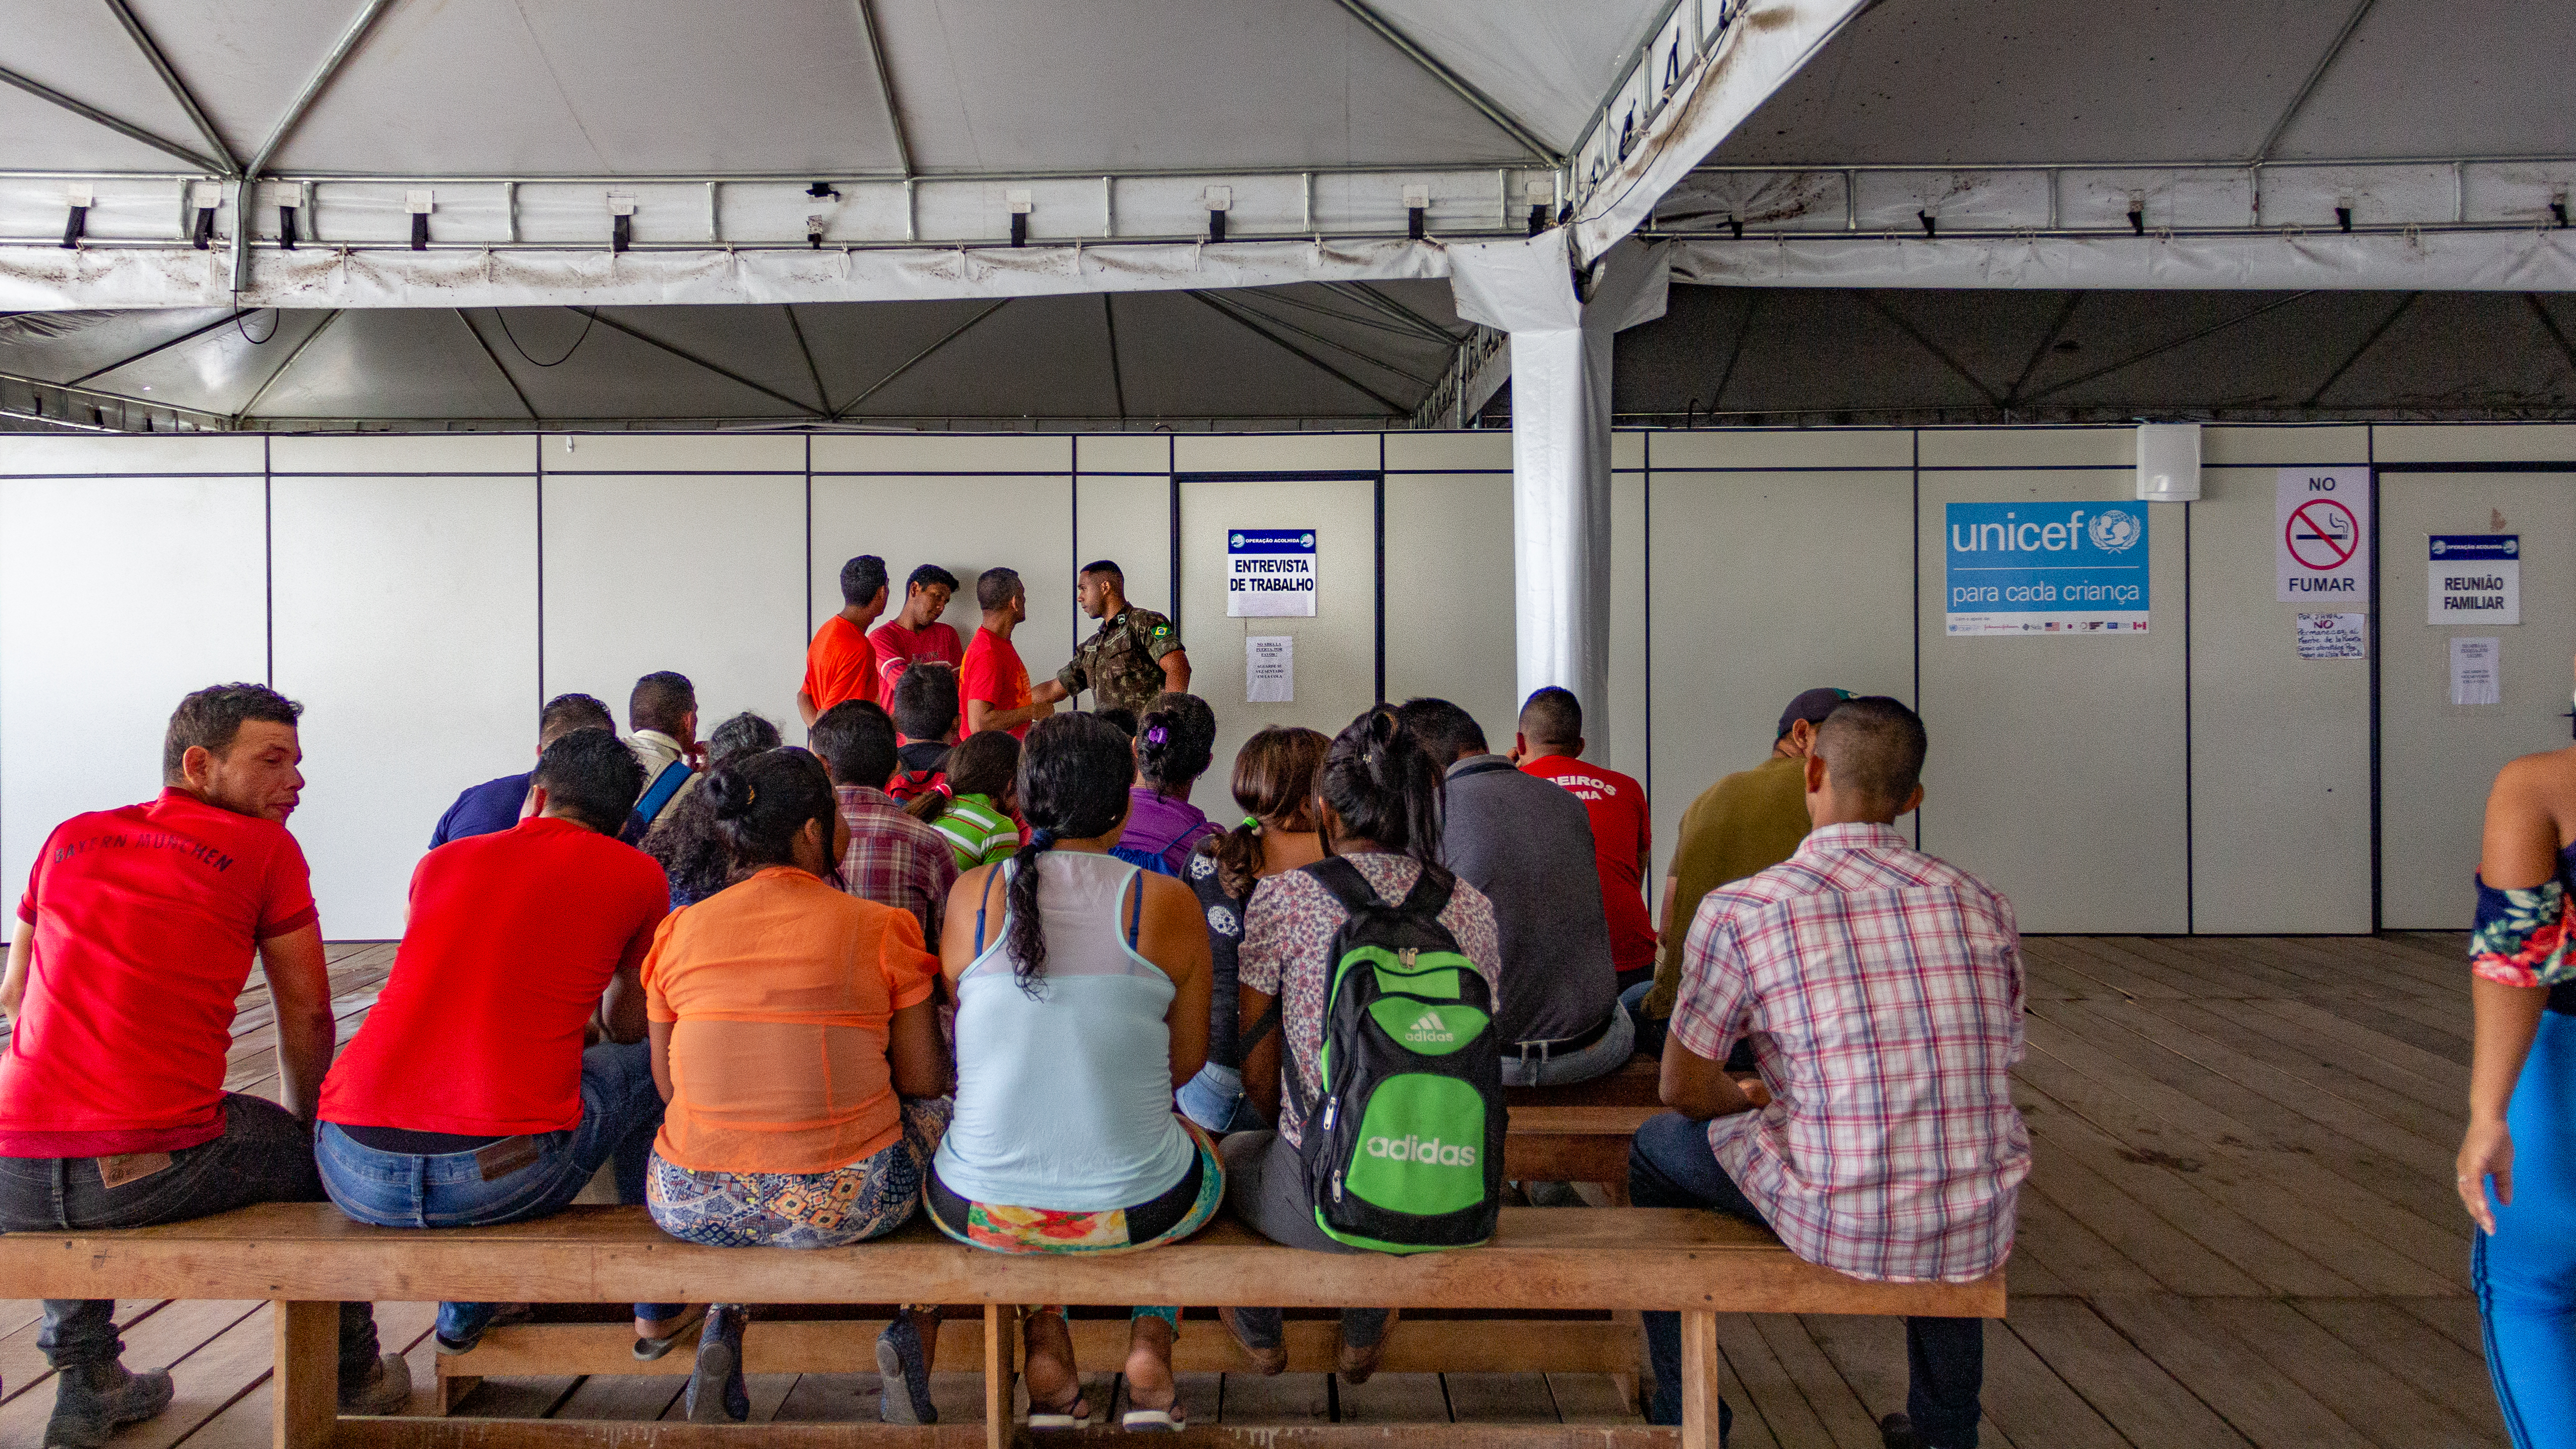 Migrants queueing for interviews inside the Registration and interiorization shelter, Boa Vista